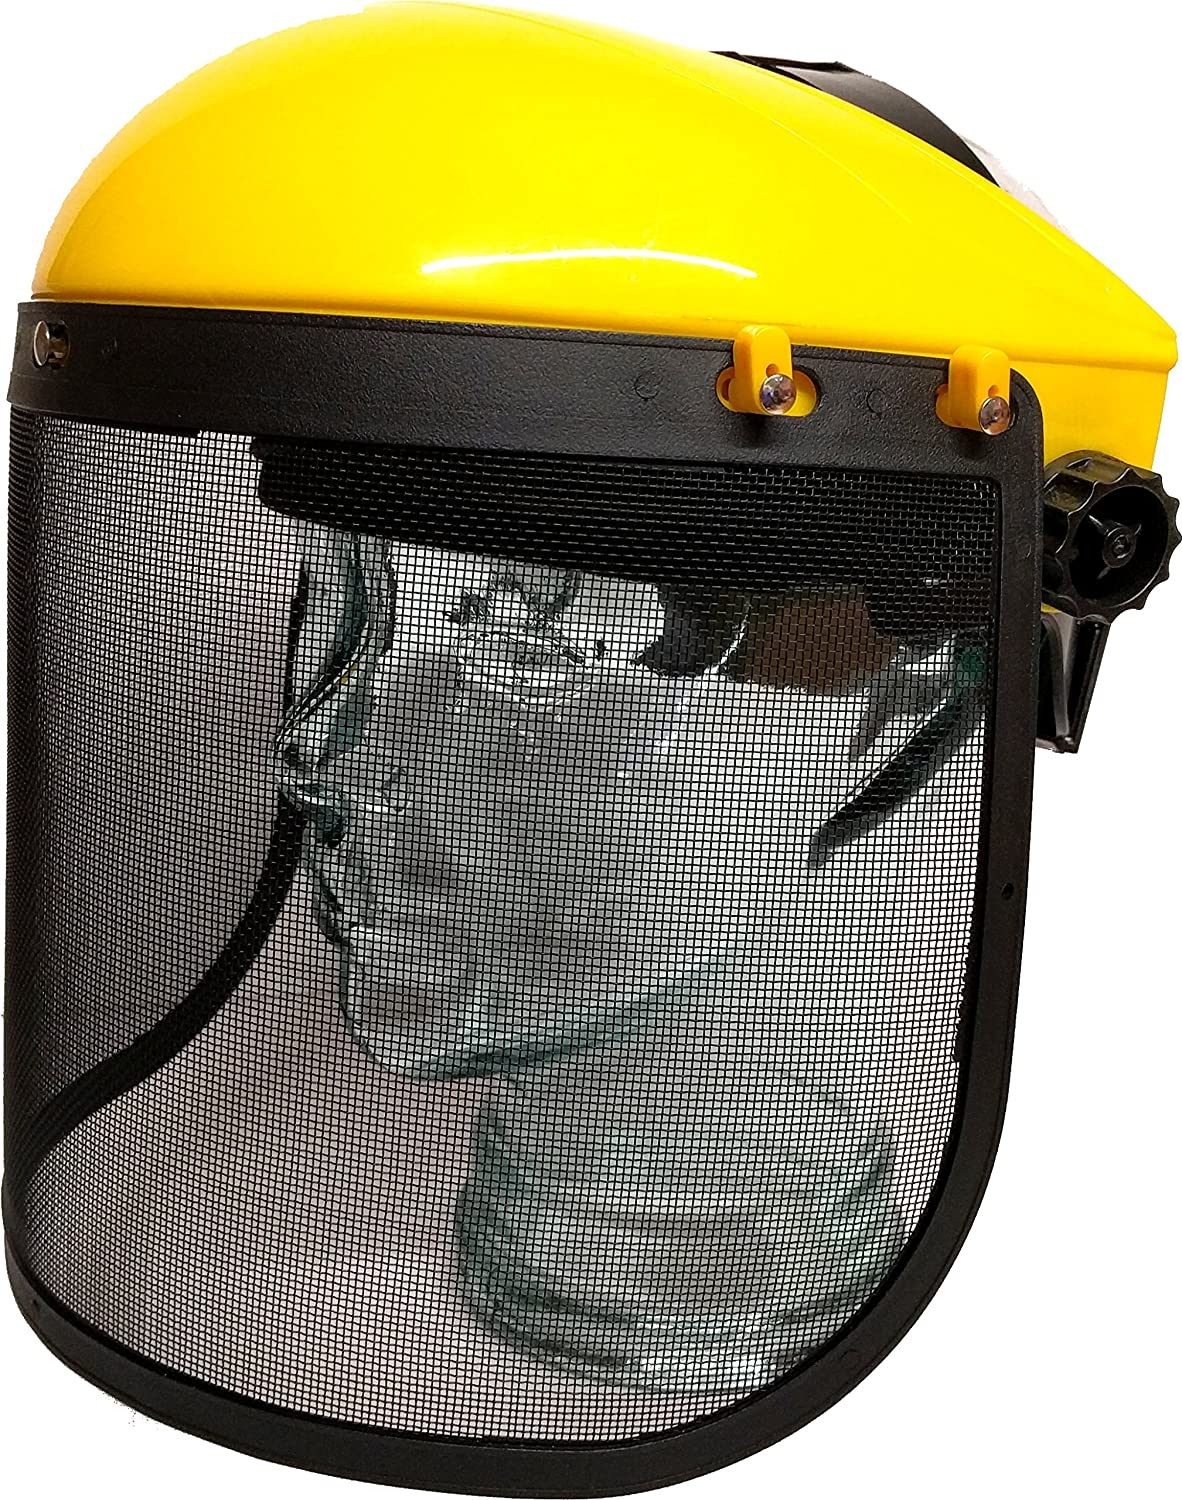 ESENO Industrial Face Protection and Wide Visor